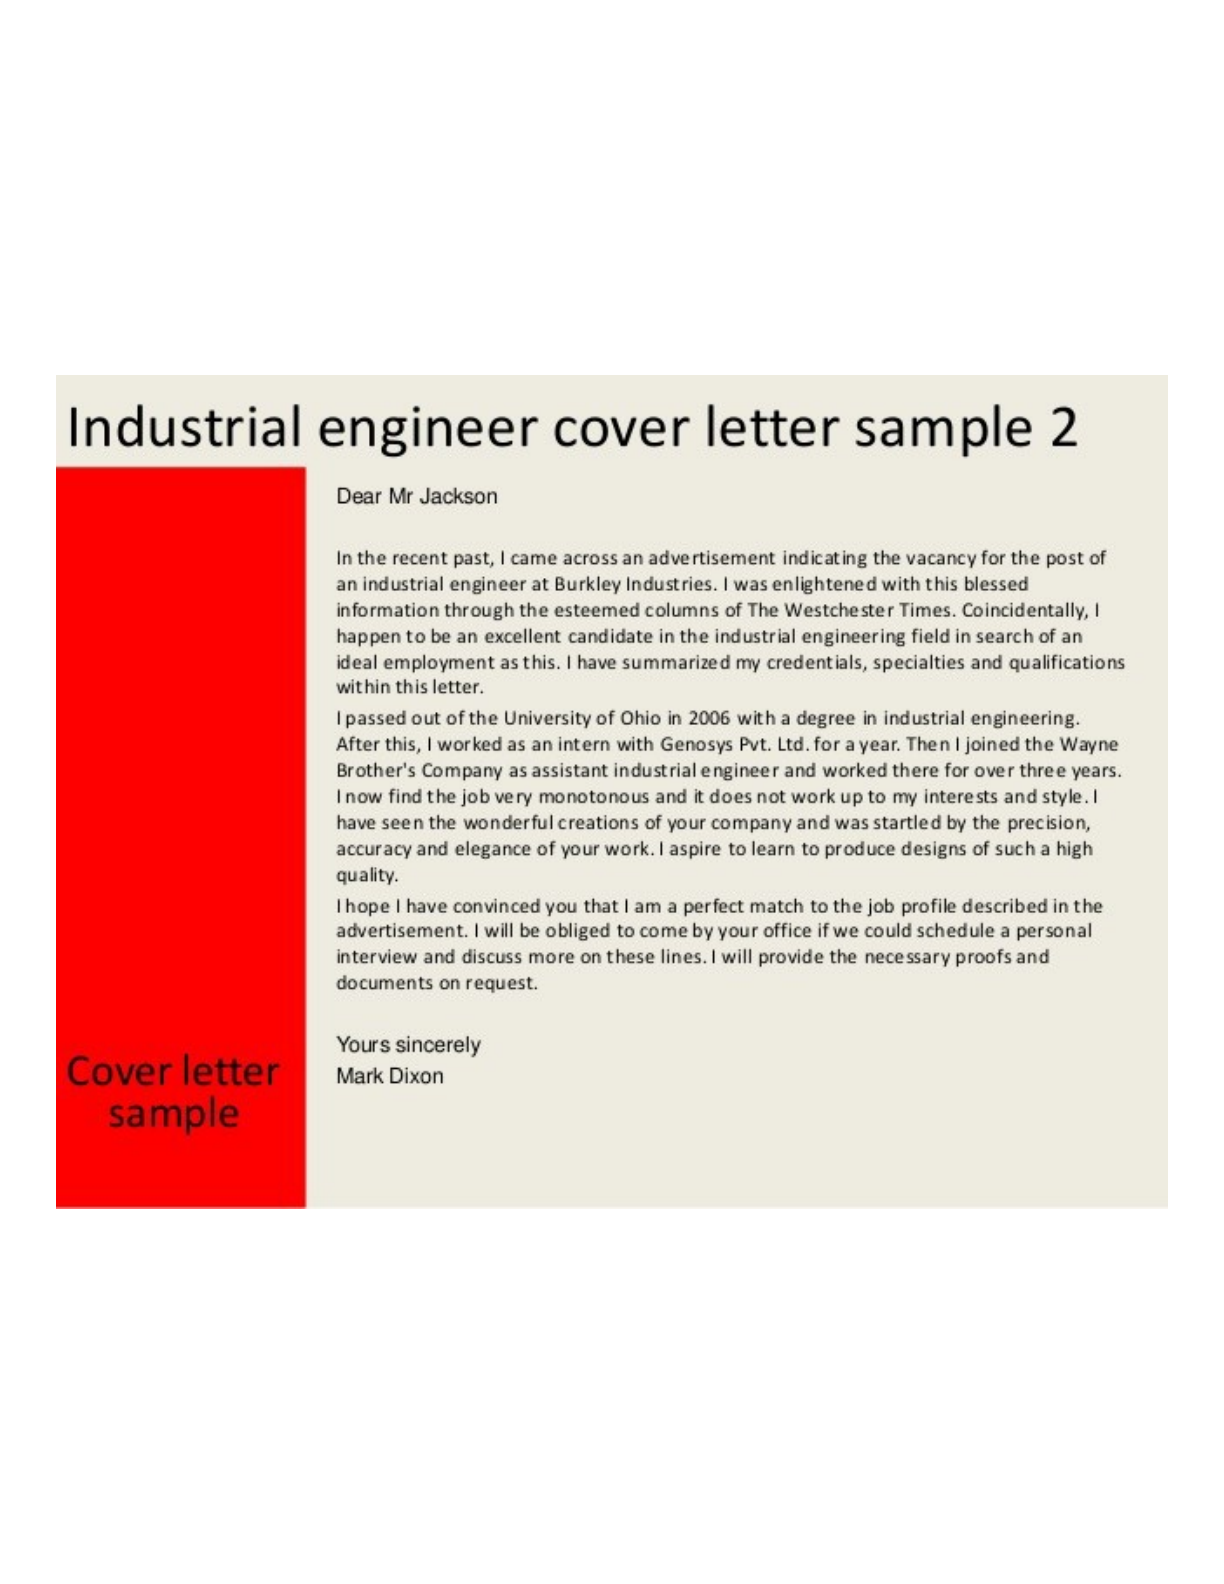 Industrial engineering cover letter samples and templates page spiritdancerdesigns Gallery